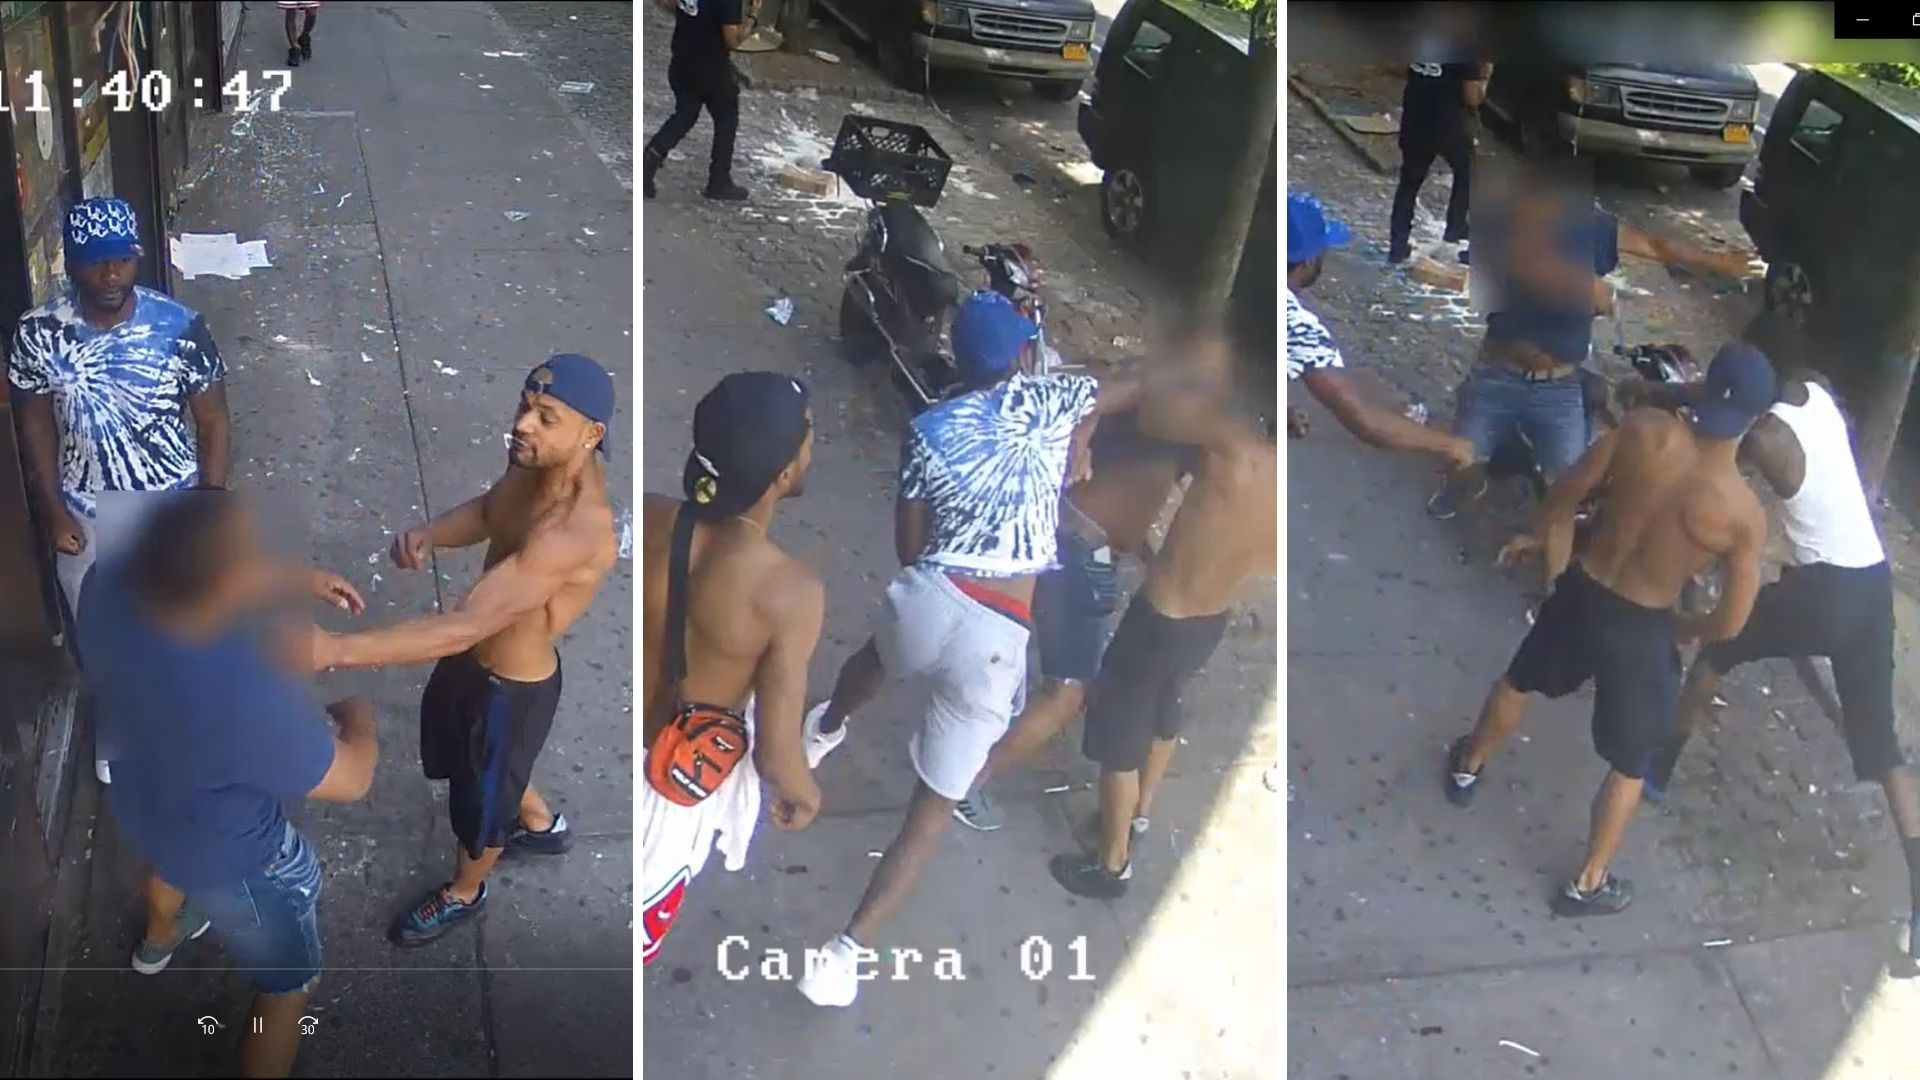 Trio assaults off-duty NYPD officer in the Bronx